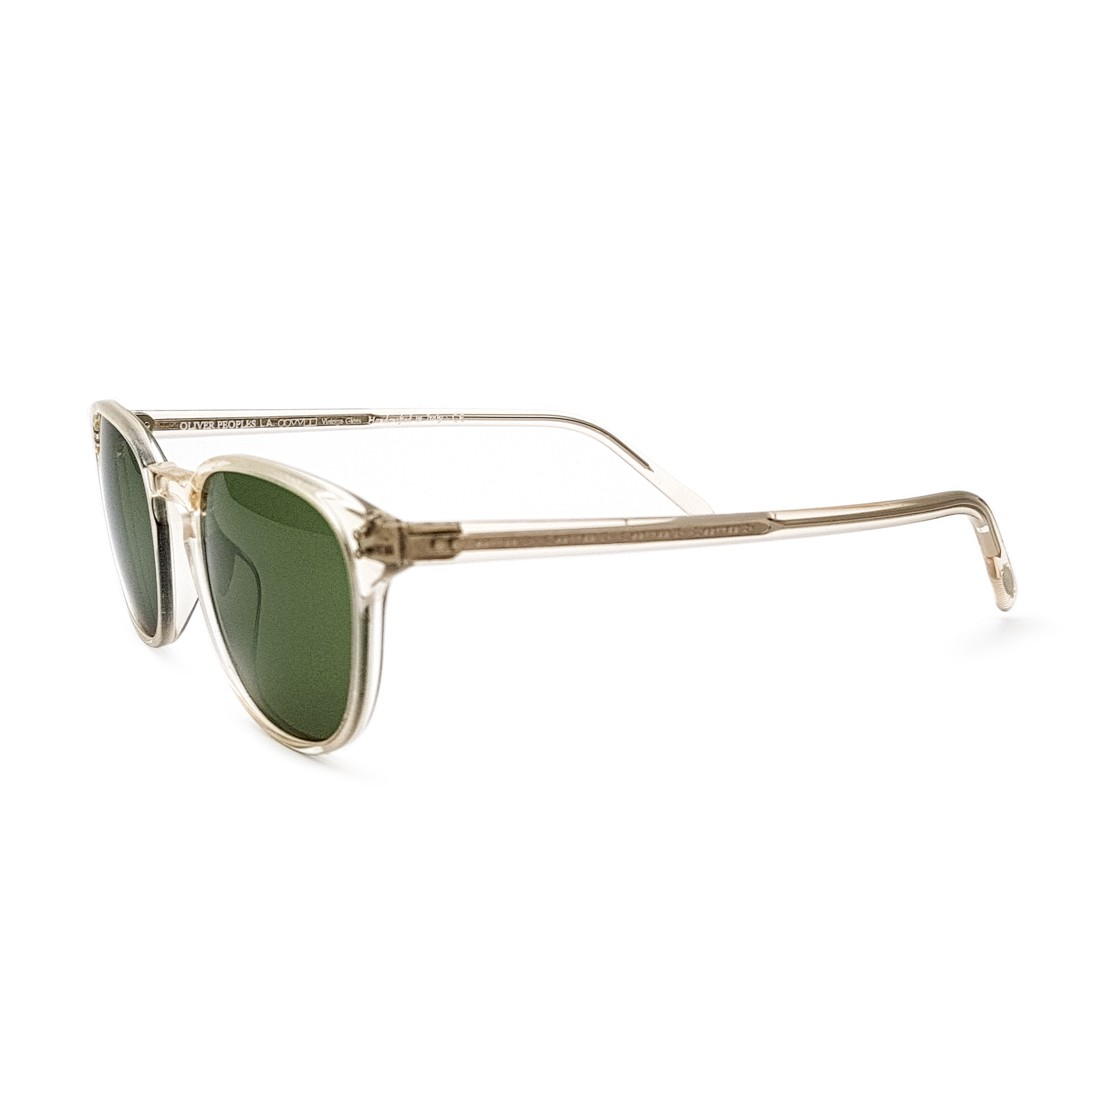 OLIVER PEOPLES 5219S